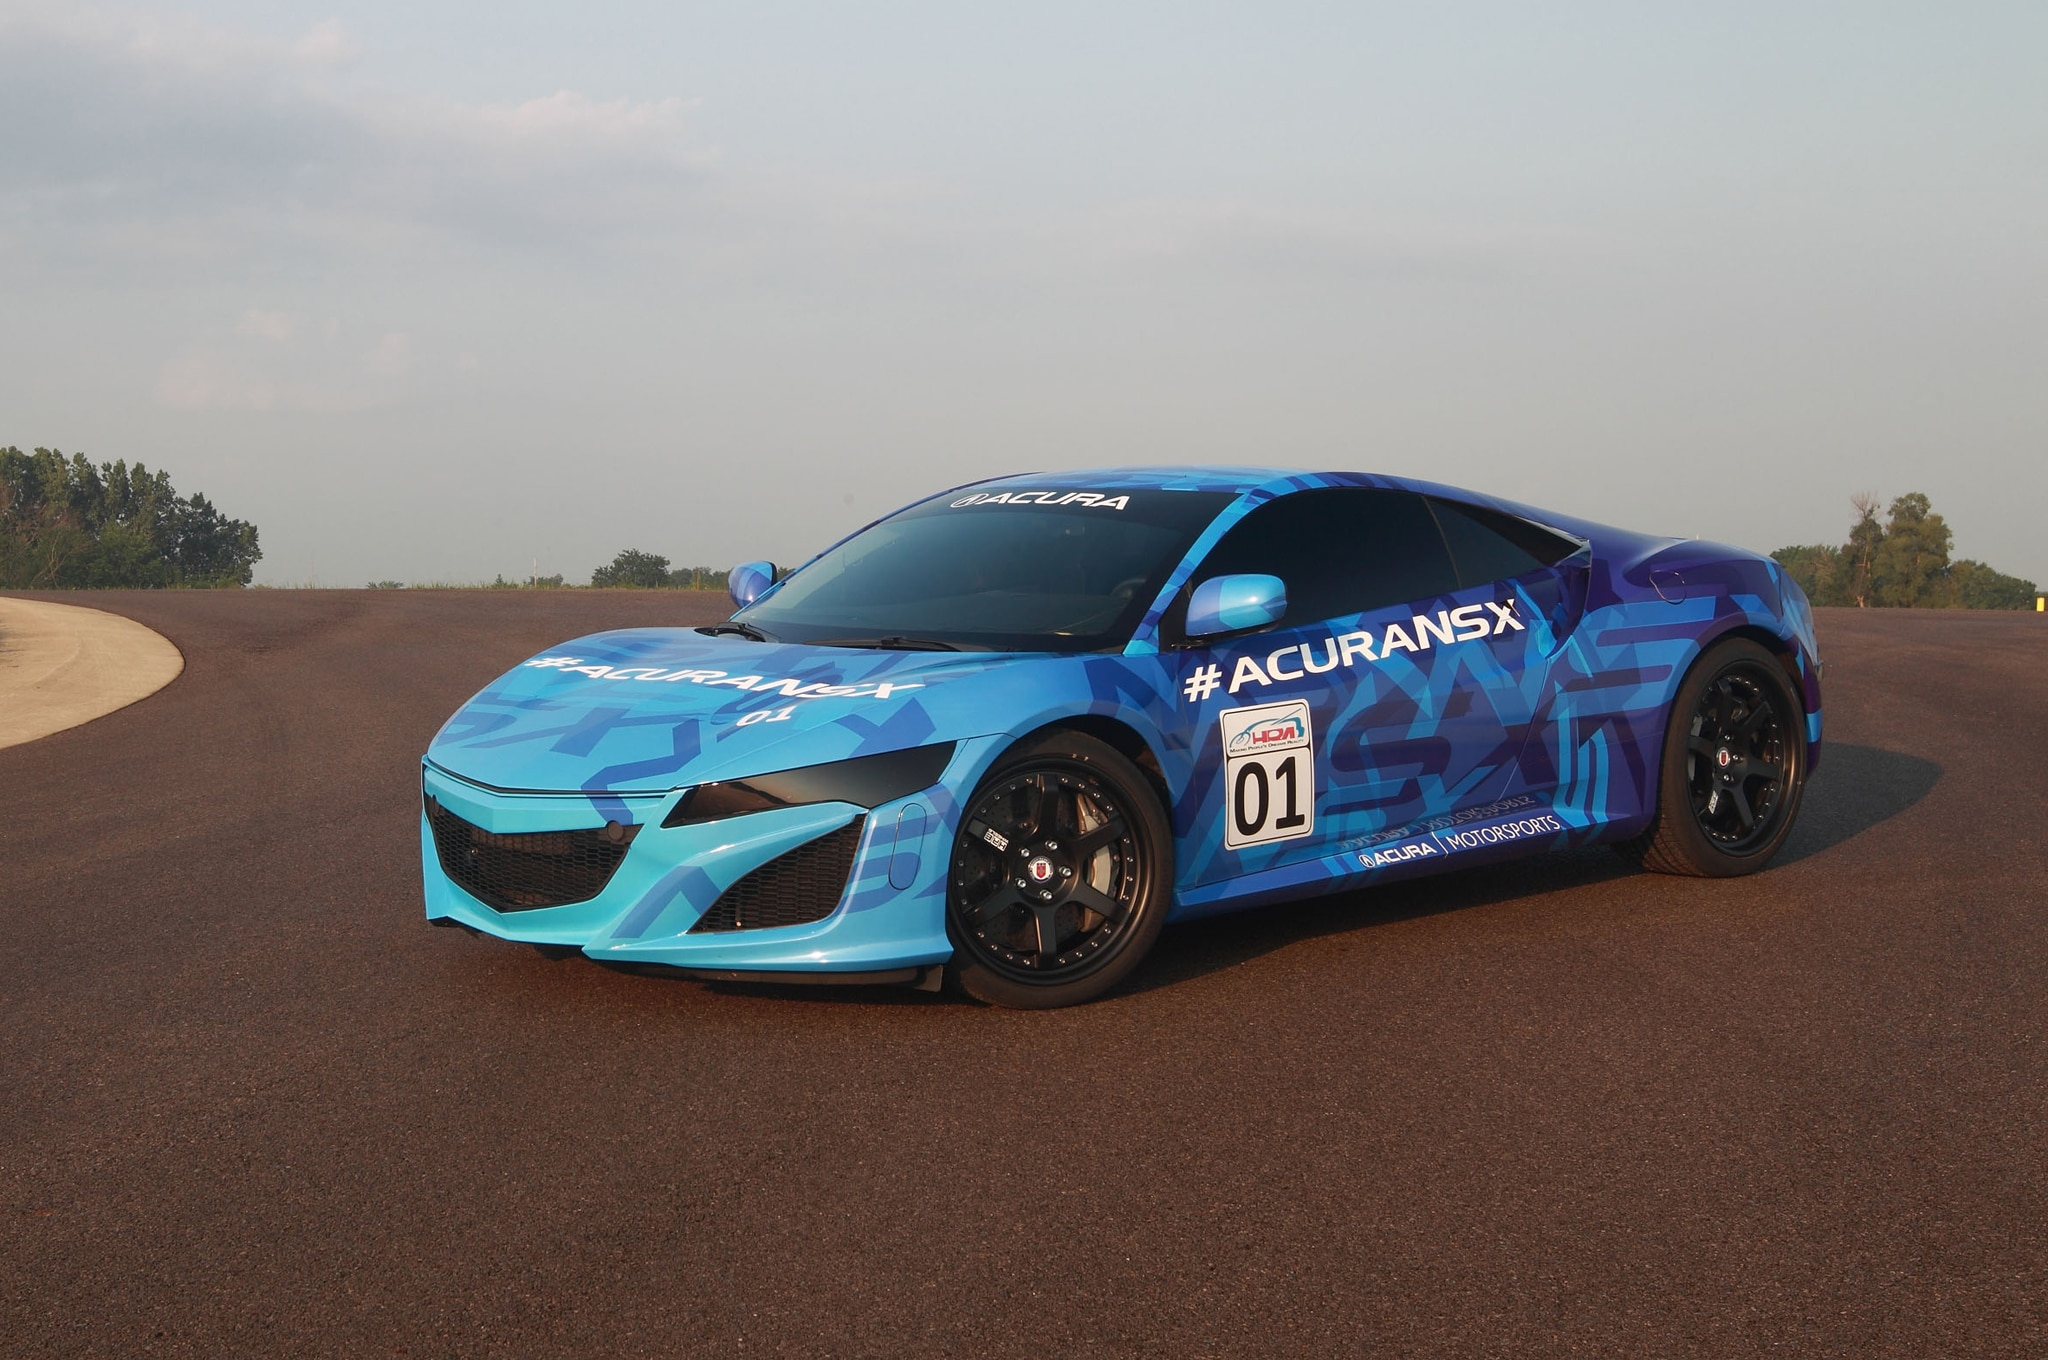 2015 Acura NSX Prototype On Track 21